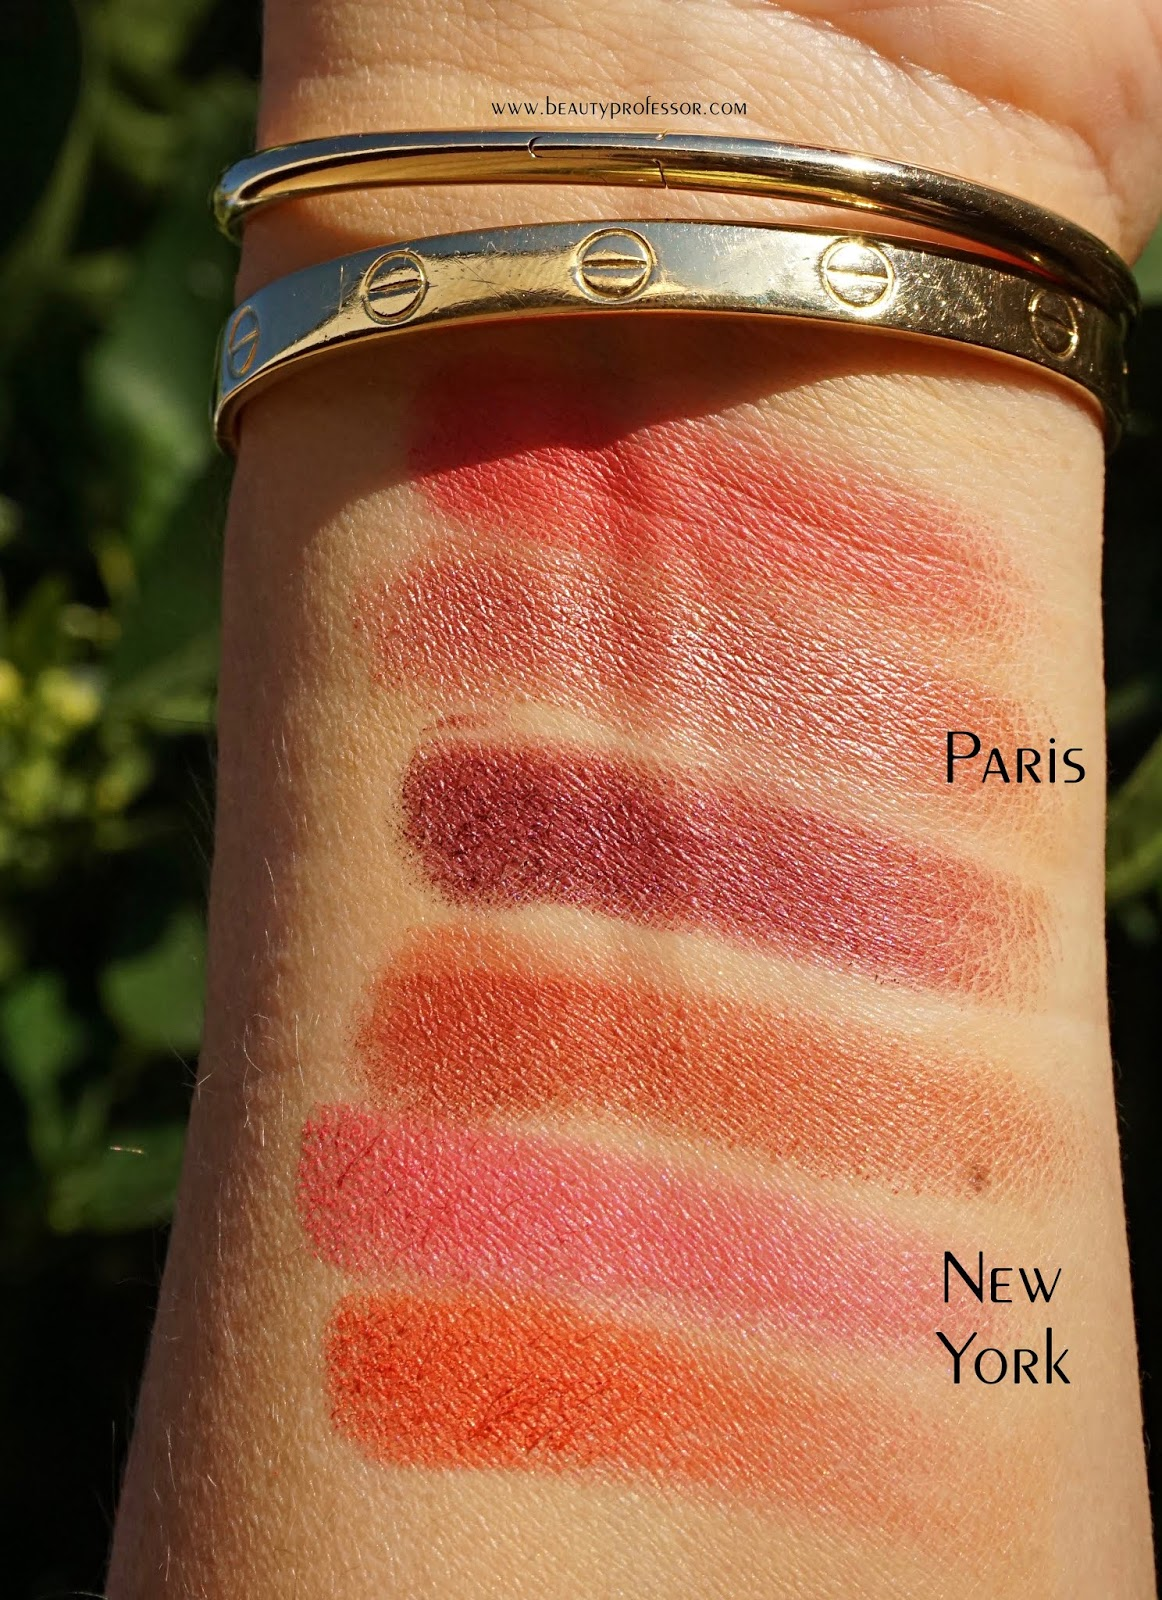 Laura Mercier Velour Lip Powder swatches